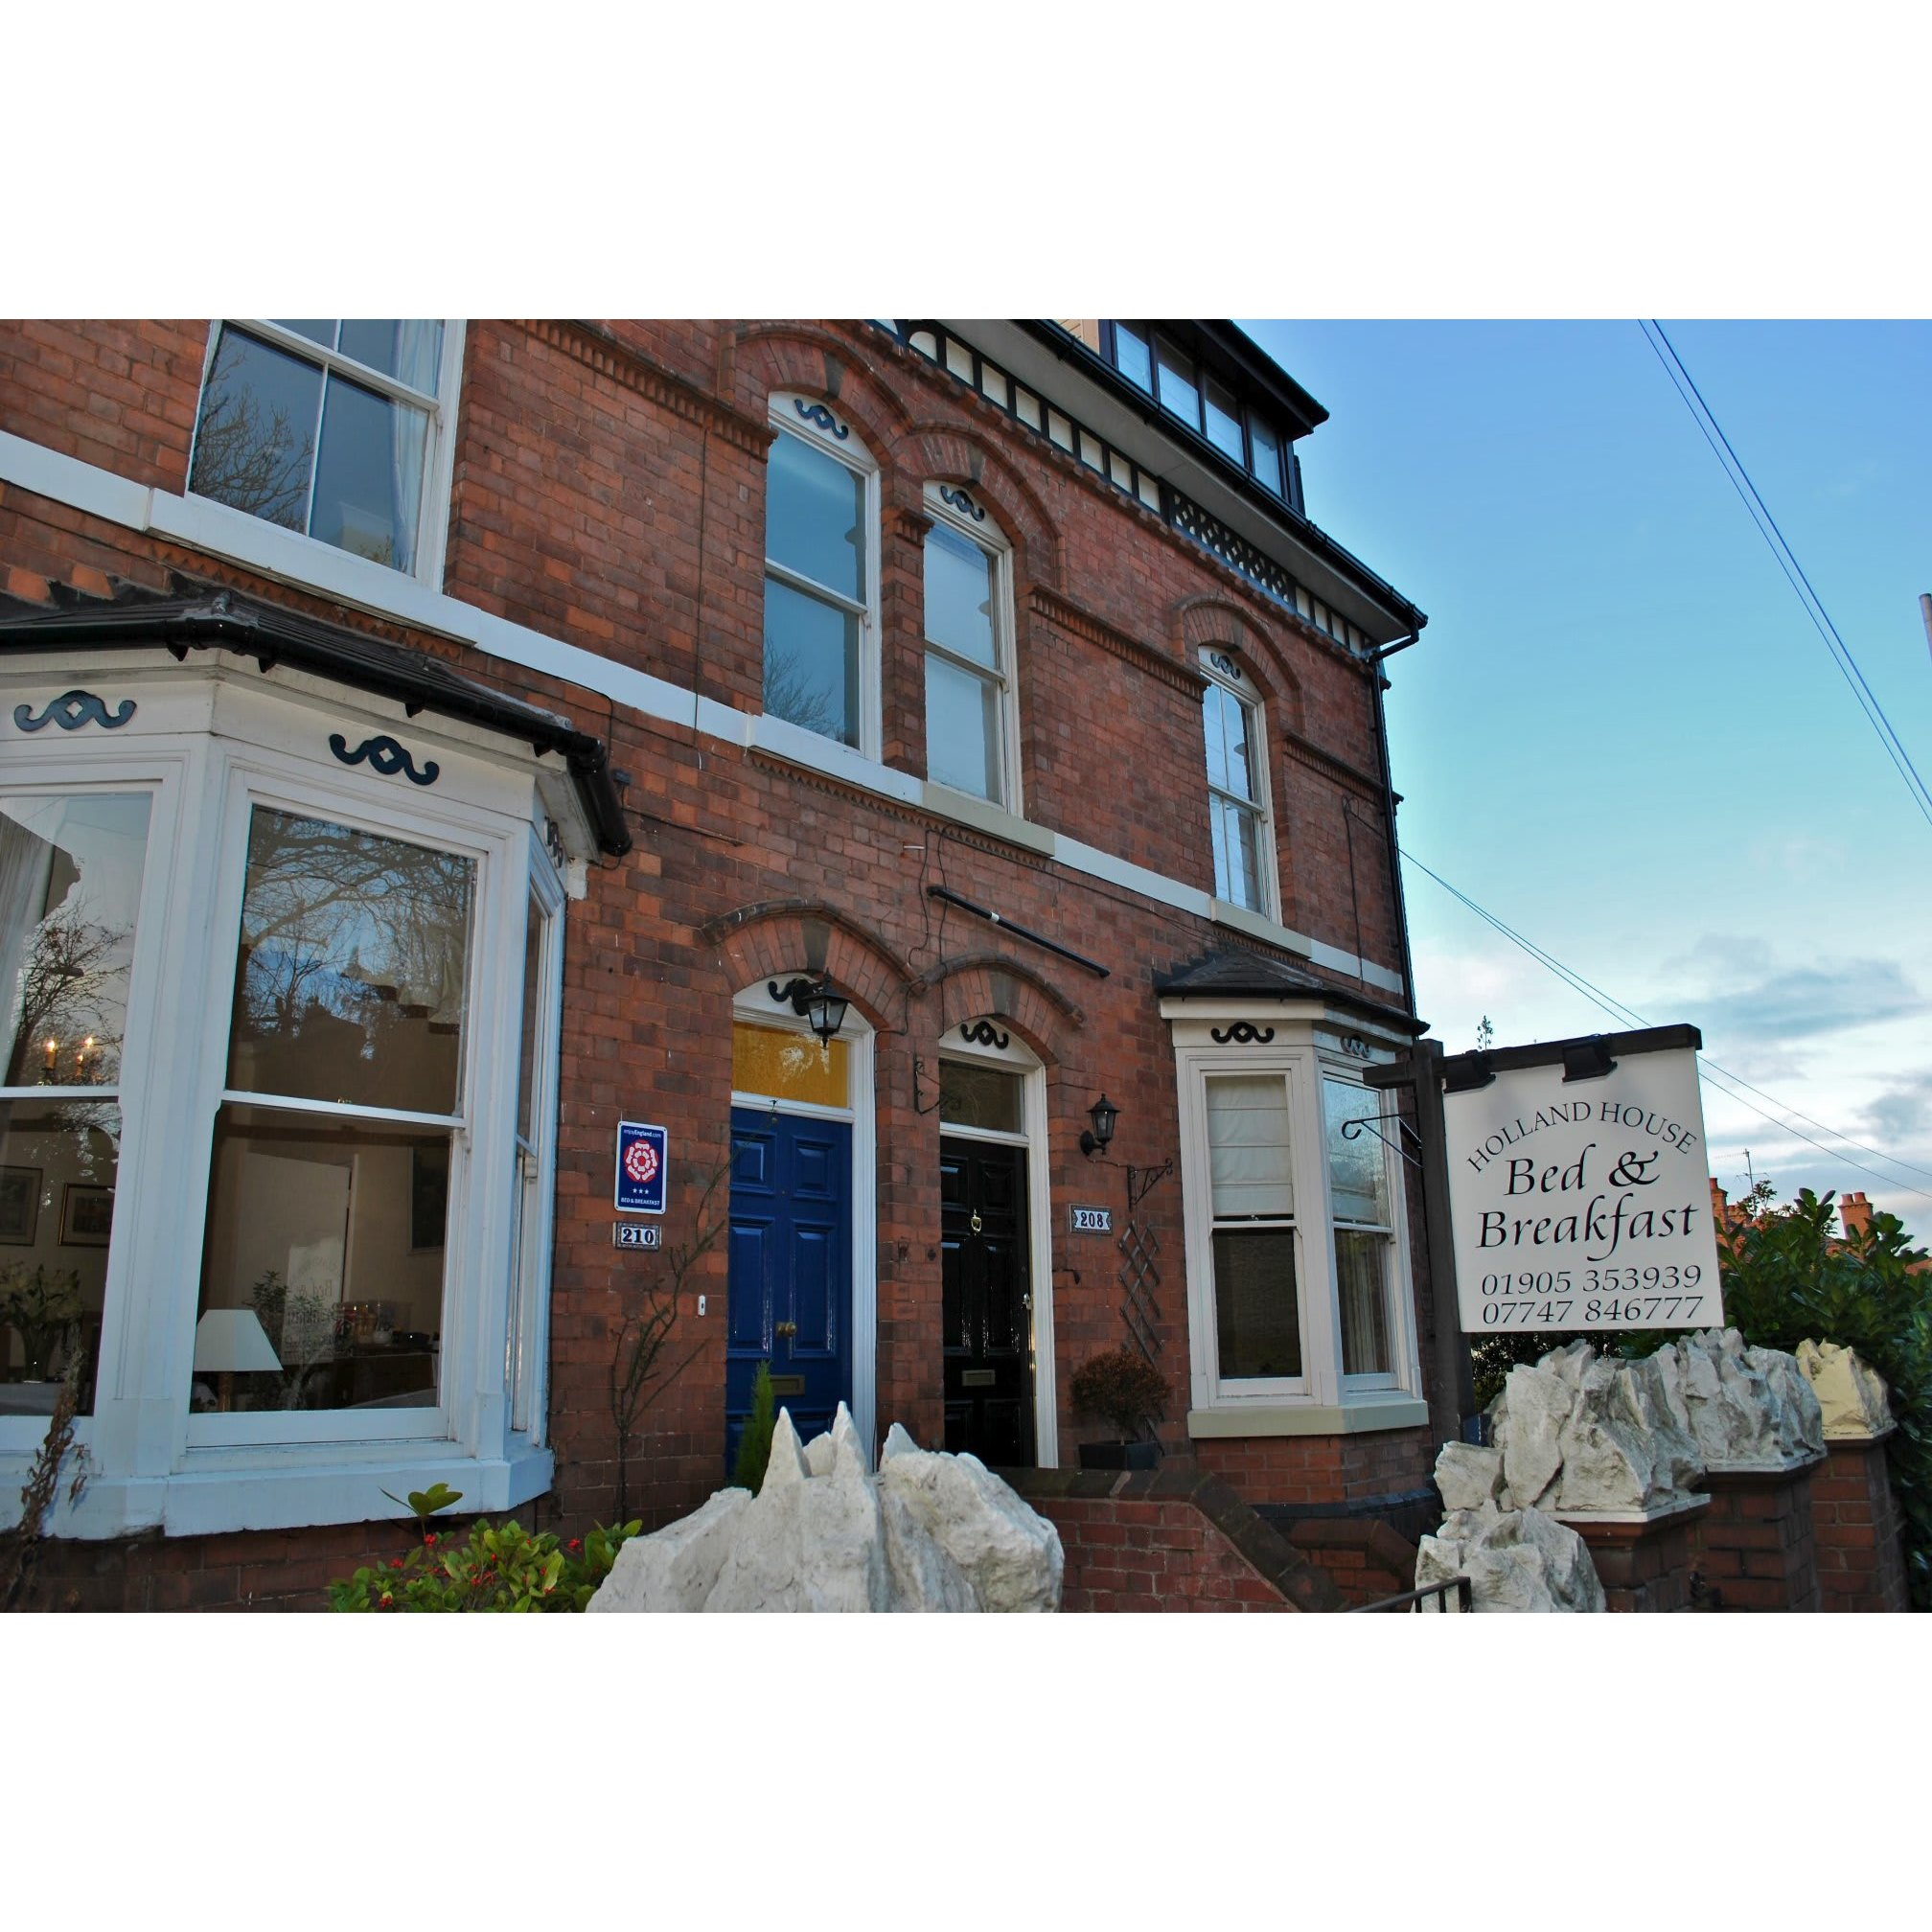 Holland House Bed & Breakfast - Worcester, Worcestershire WR5 2JT - 01905 353939 | ShowMeLocal.com